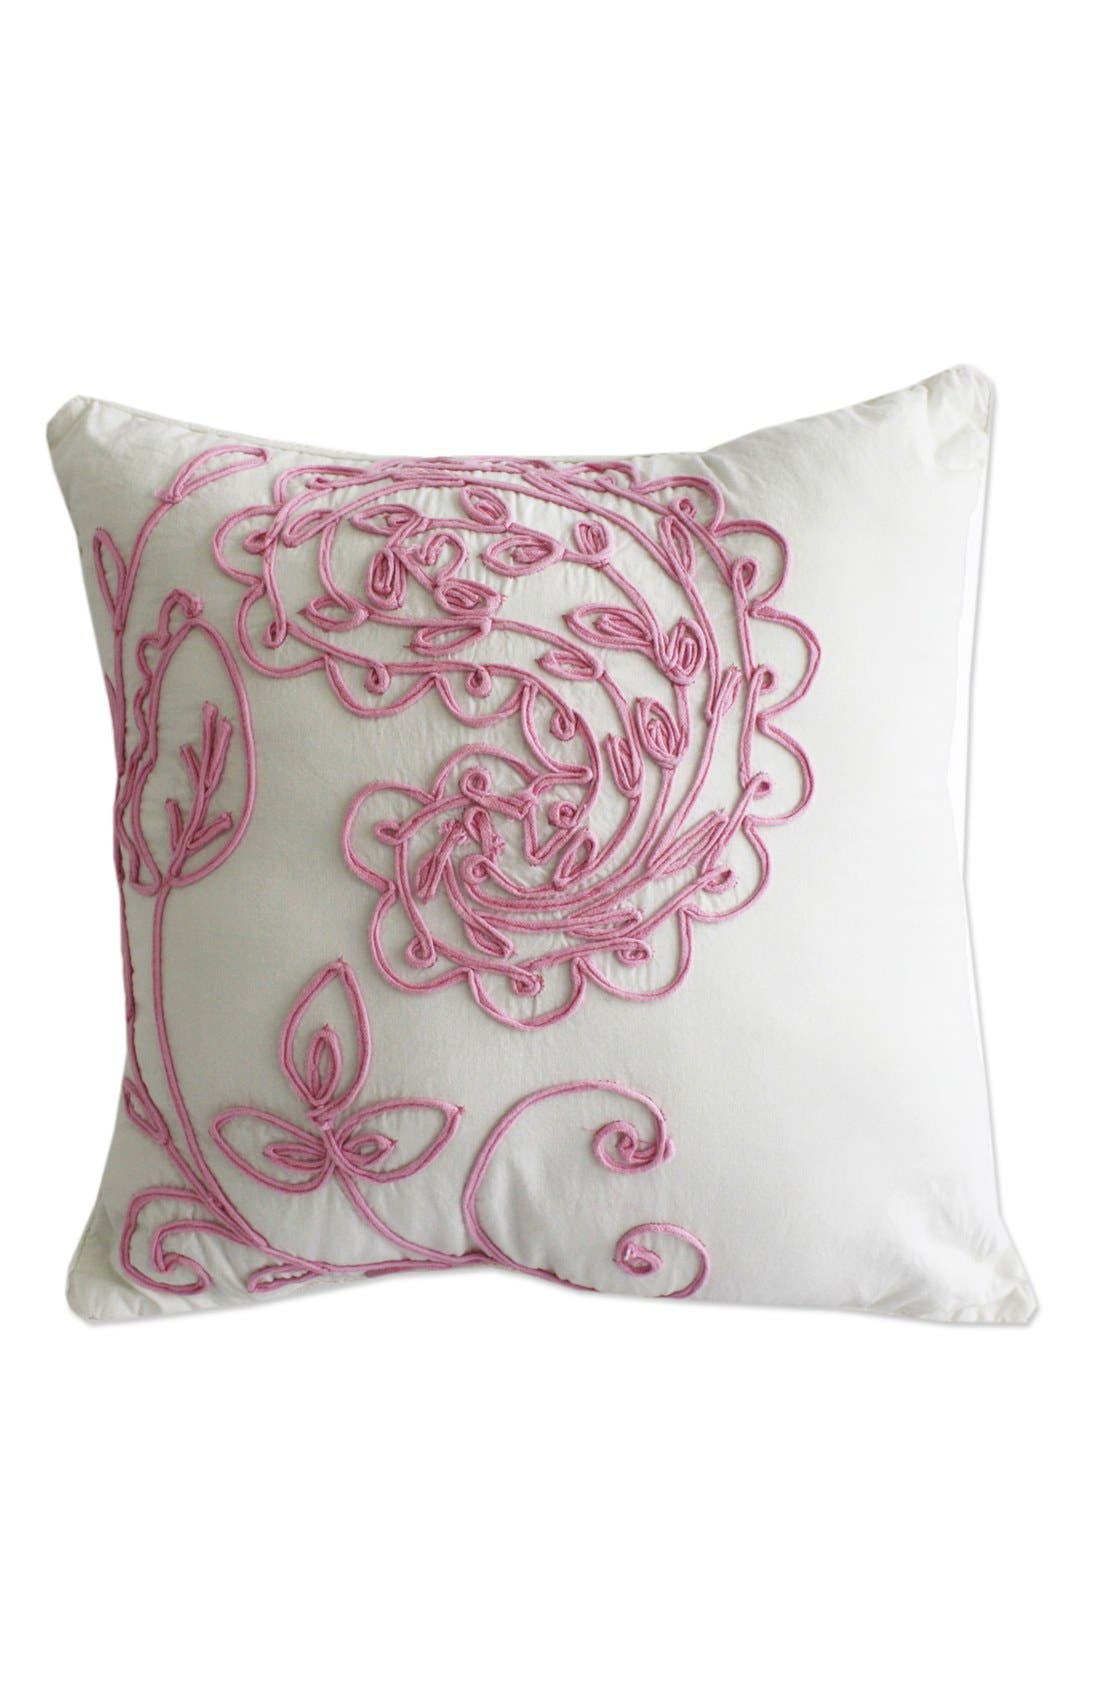 Main Image - Dena Home Pillow